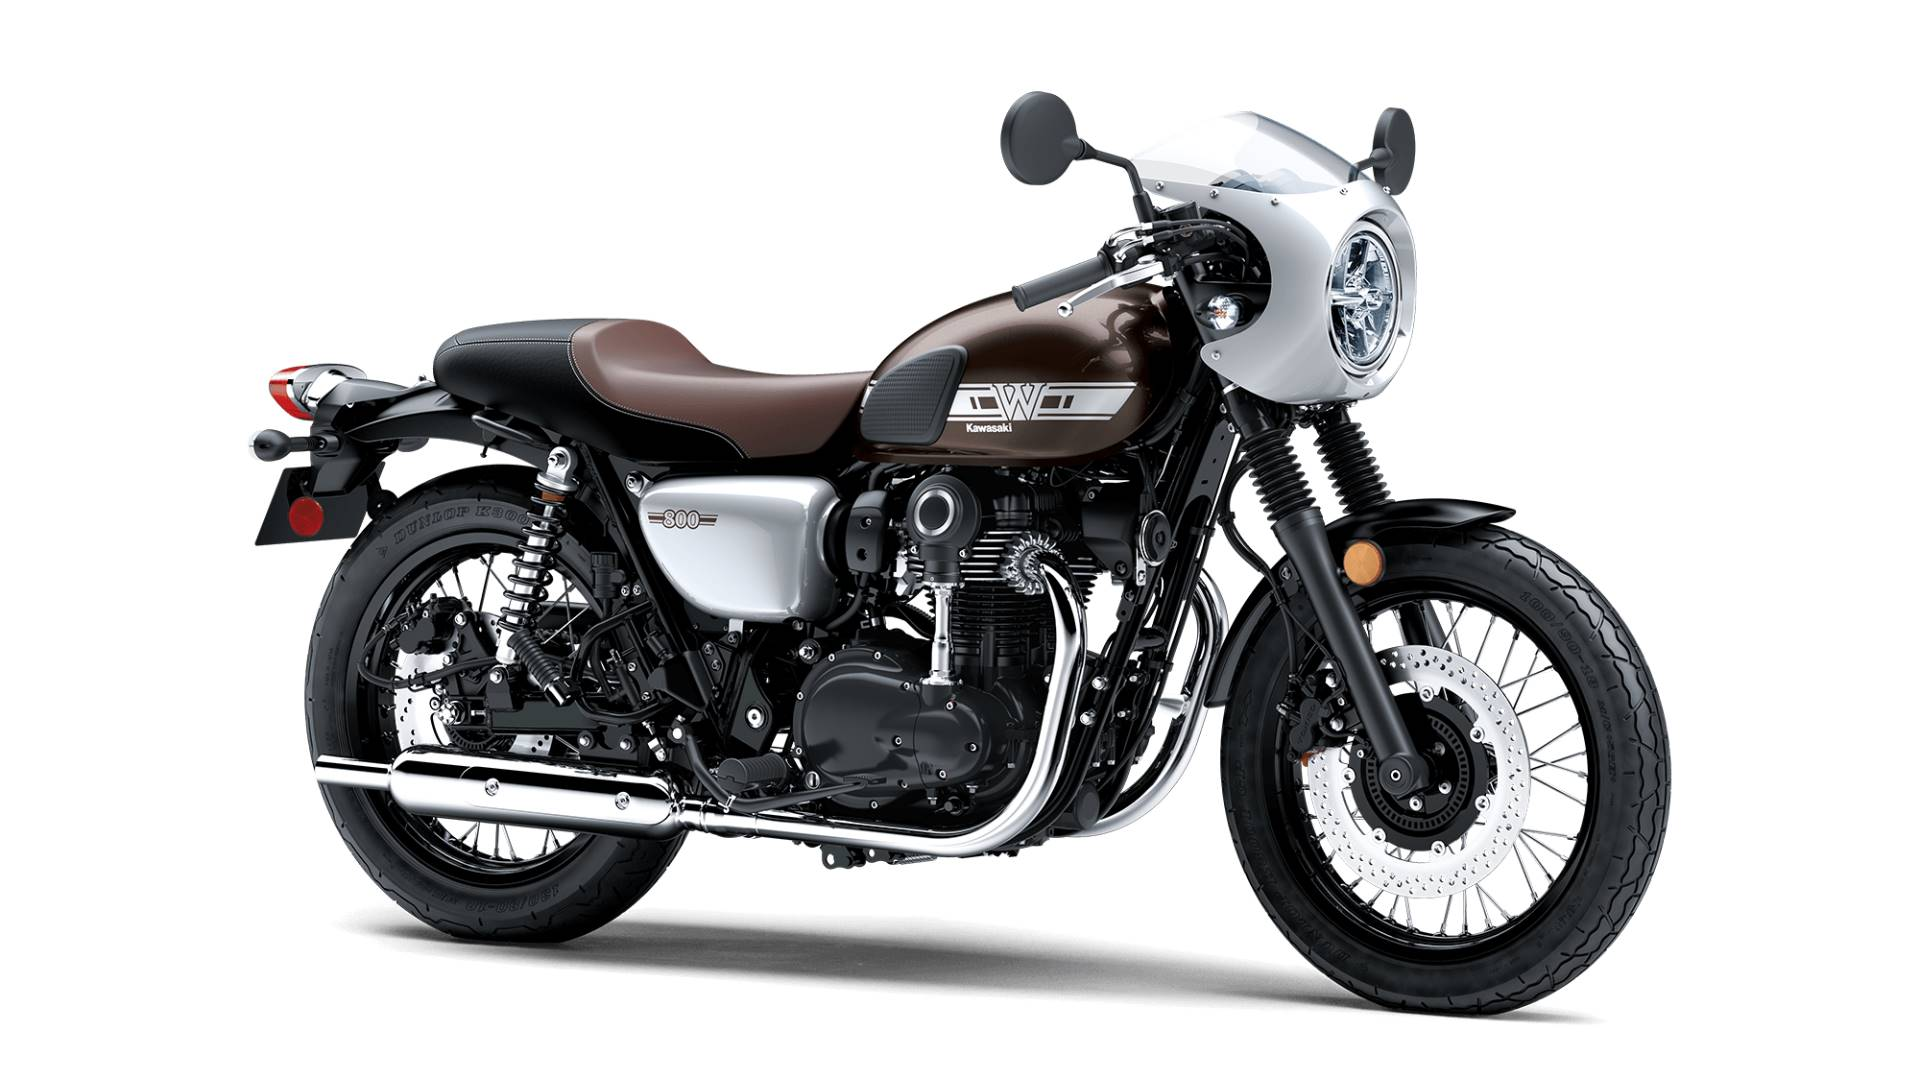 2019 Kawasaki W800 CAFE in Zephyrhills, Florida - Photo 2